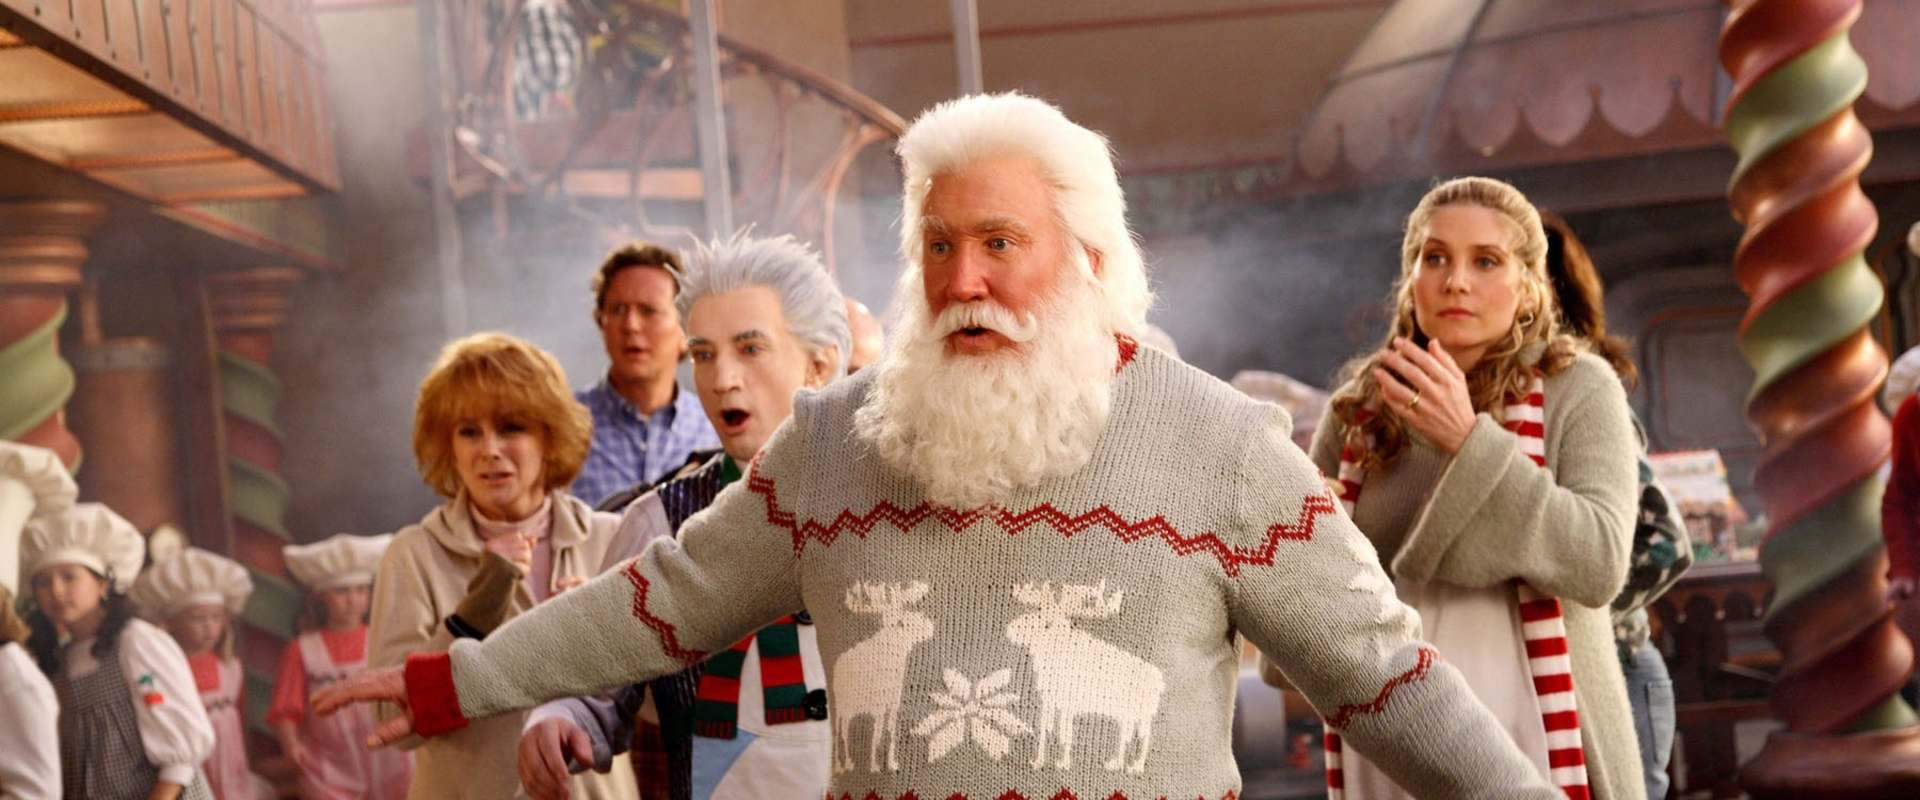 The Santa Clause 3: The Escape Clause background 2